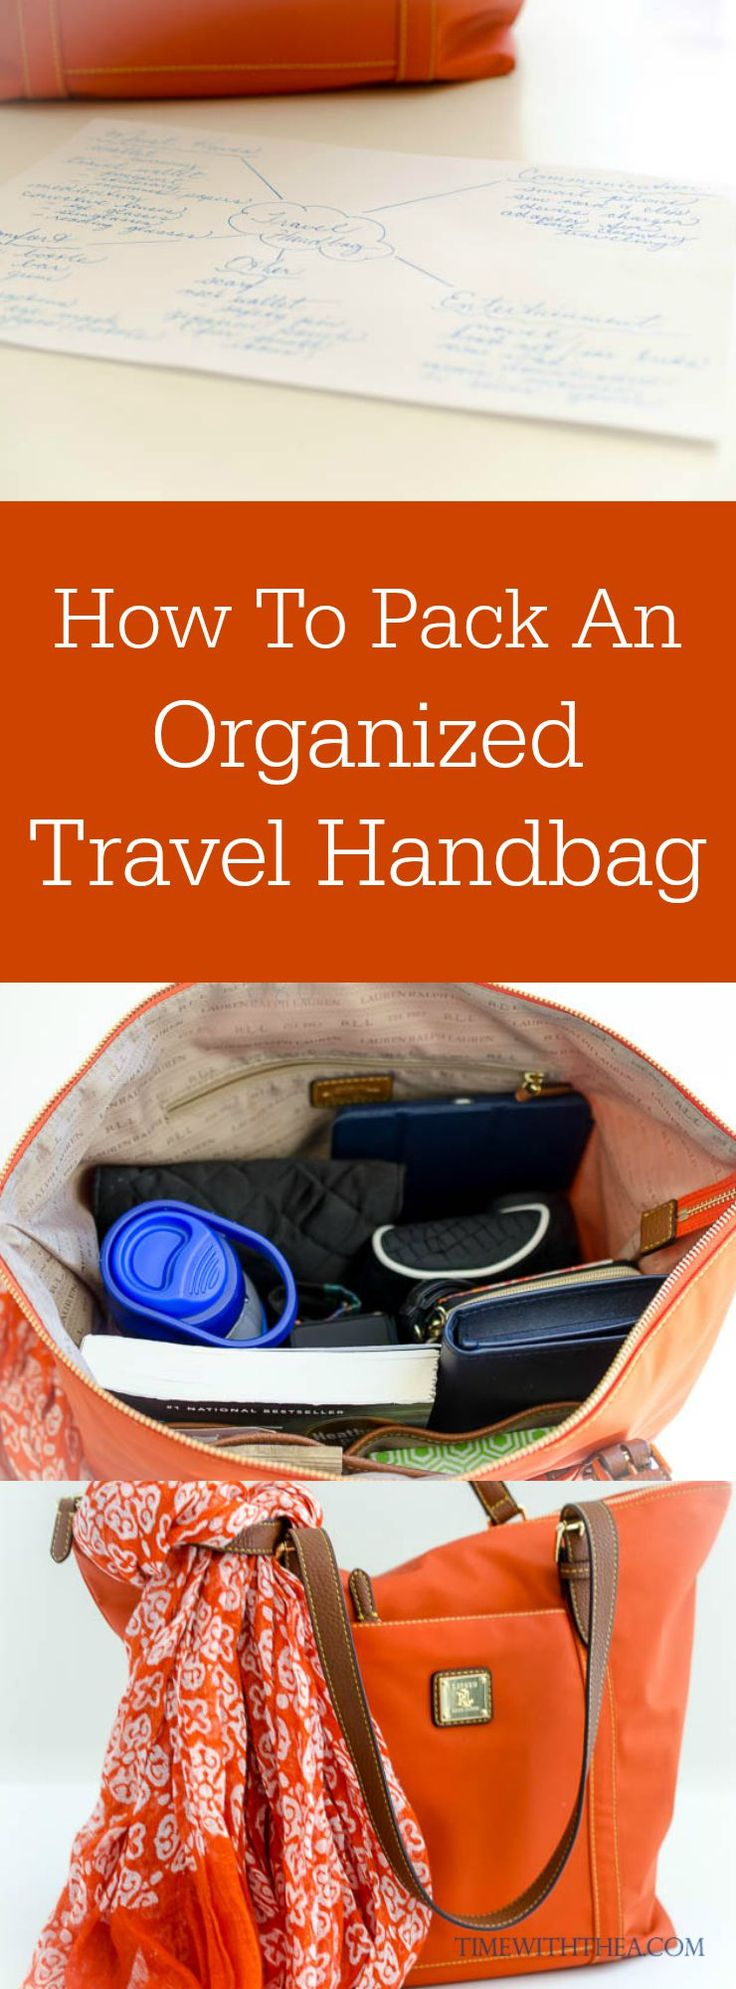 How To Pack An Organized Travel Handbag ~ Tips for how to decide what items to include and how to pack your handbag so it is very organized for traveling! #AlamoDriveHappy #ad